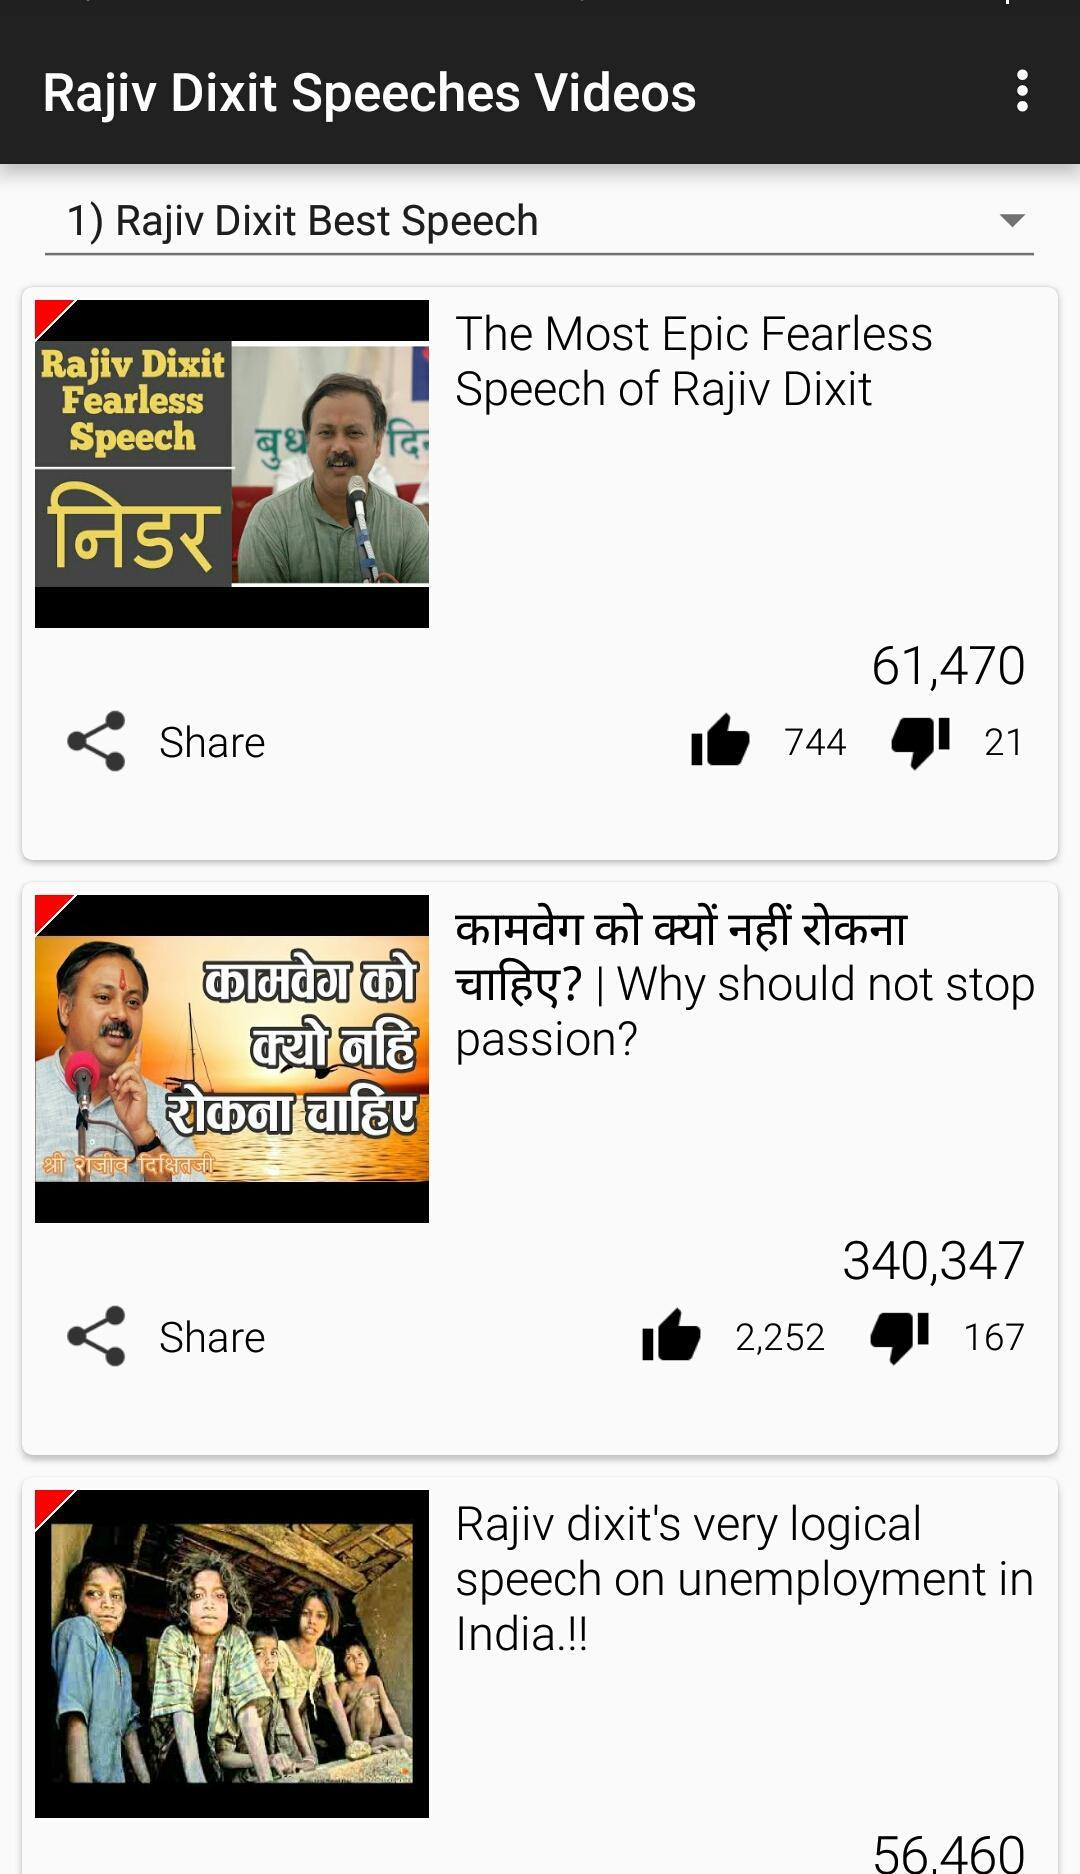 Rajiv Dixit Speech HindiVideos for Android - APK Download